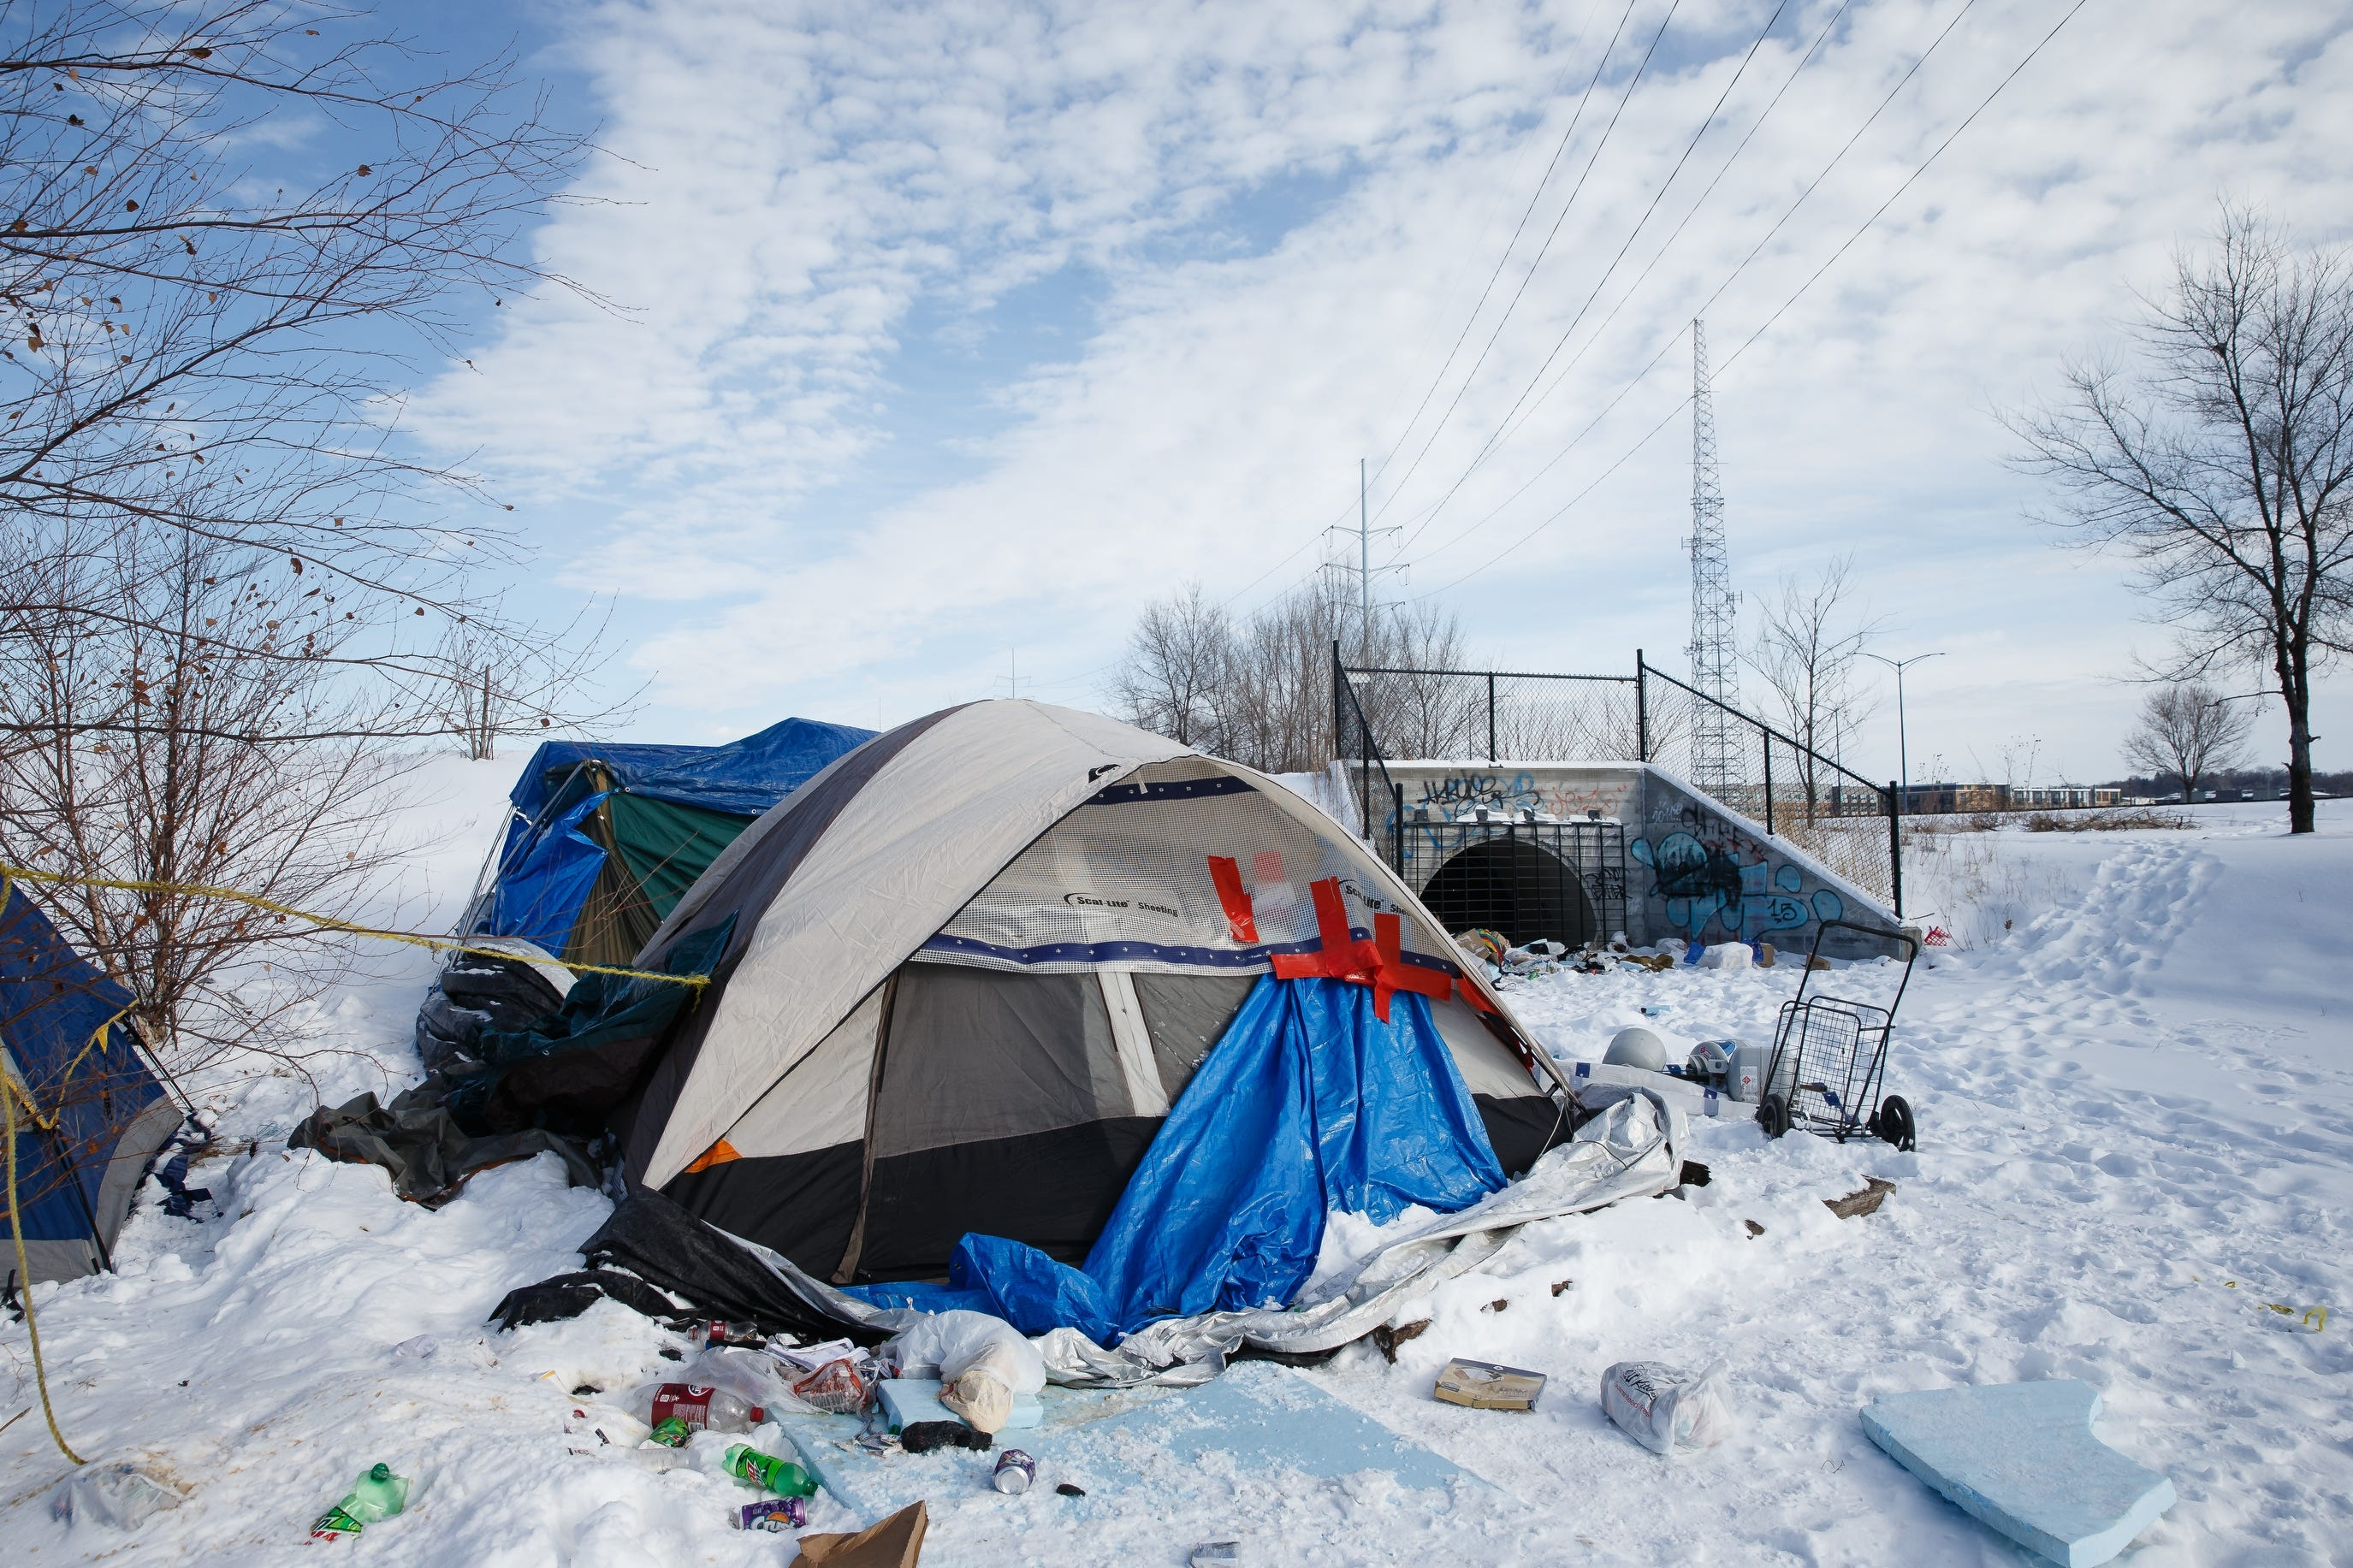 A homeless enc&ment sits along the railroad tracks between Mulberry Street and Martin Luther King Parkway & Des Moines homeless spend long cold winter outdoors